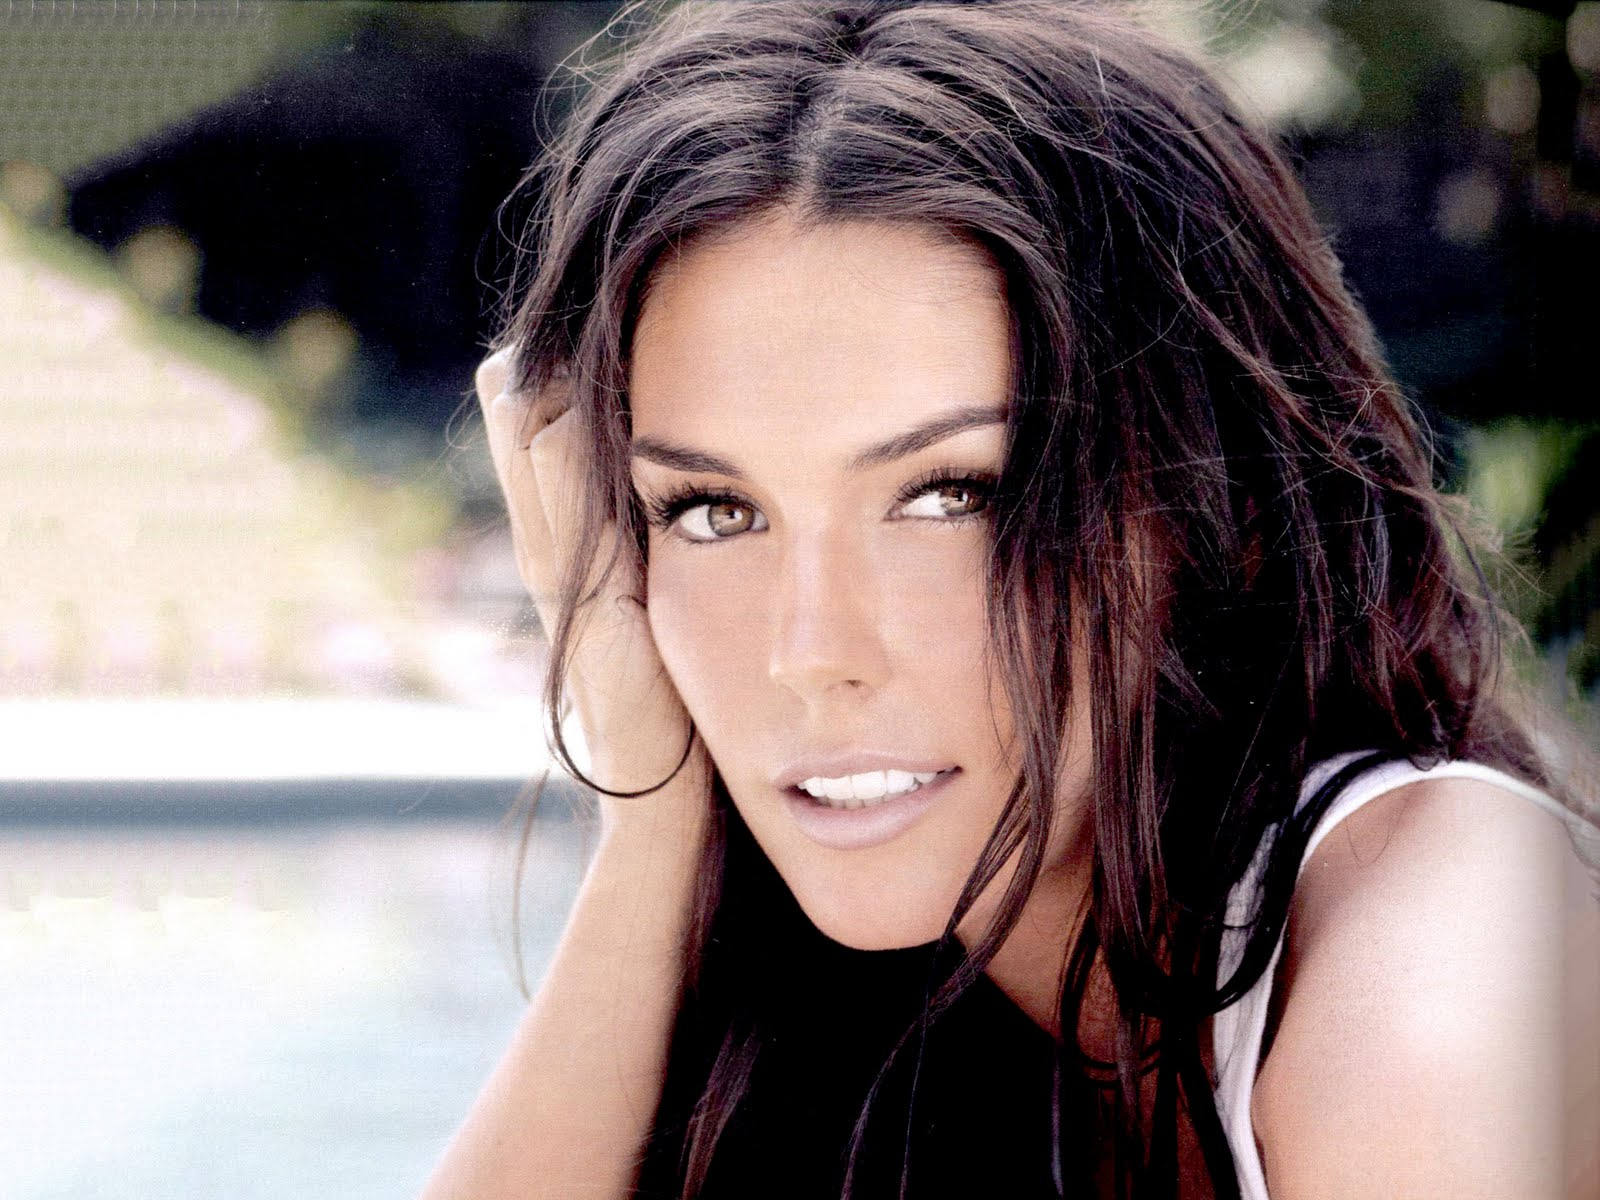 Taylor Cole plays Mina (with blond hair)